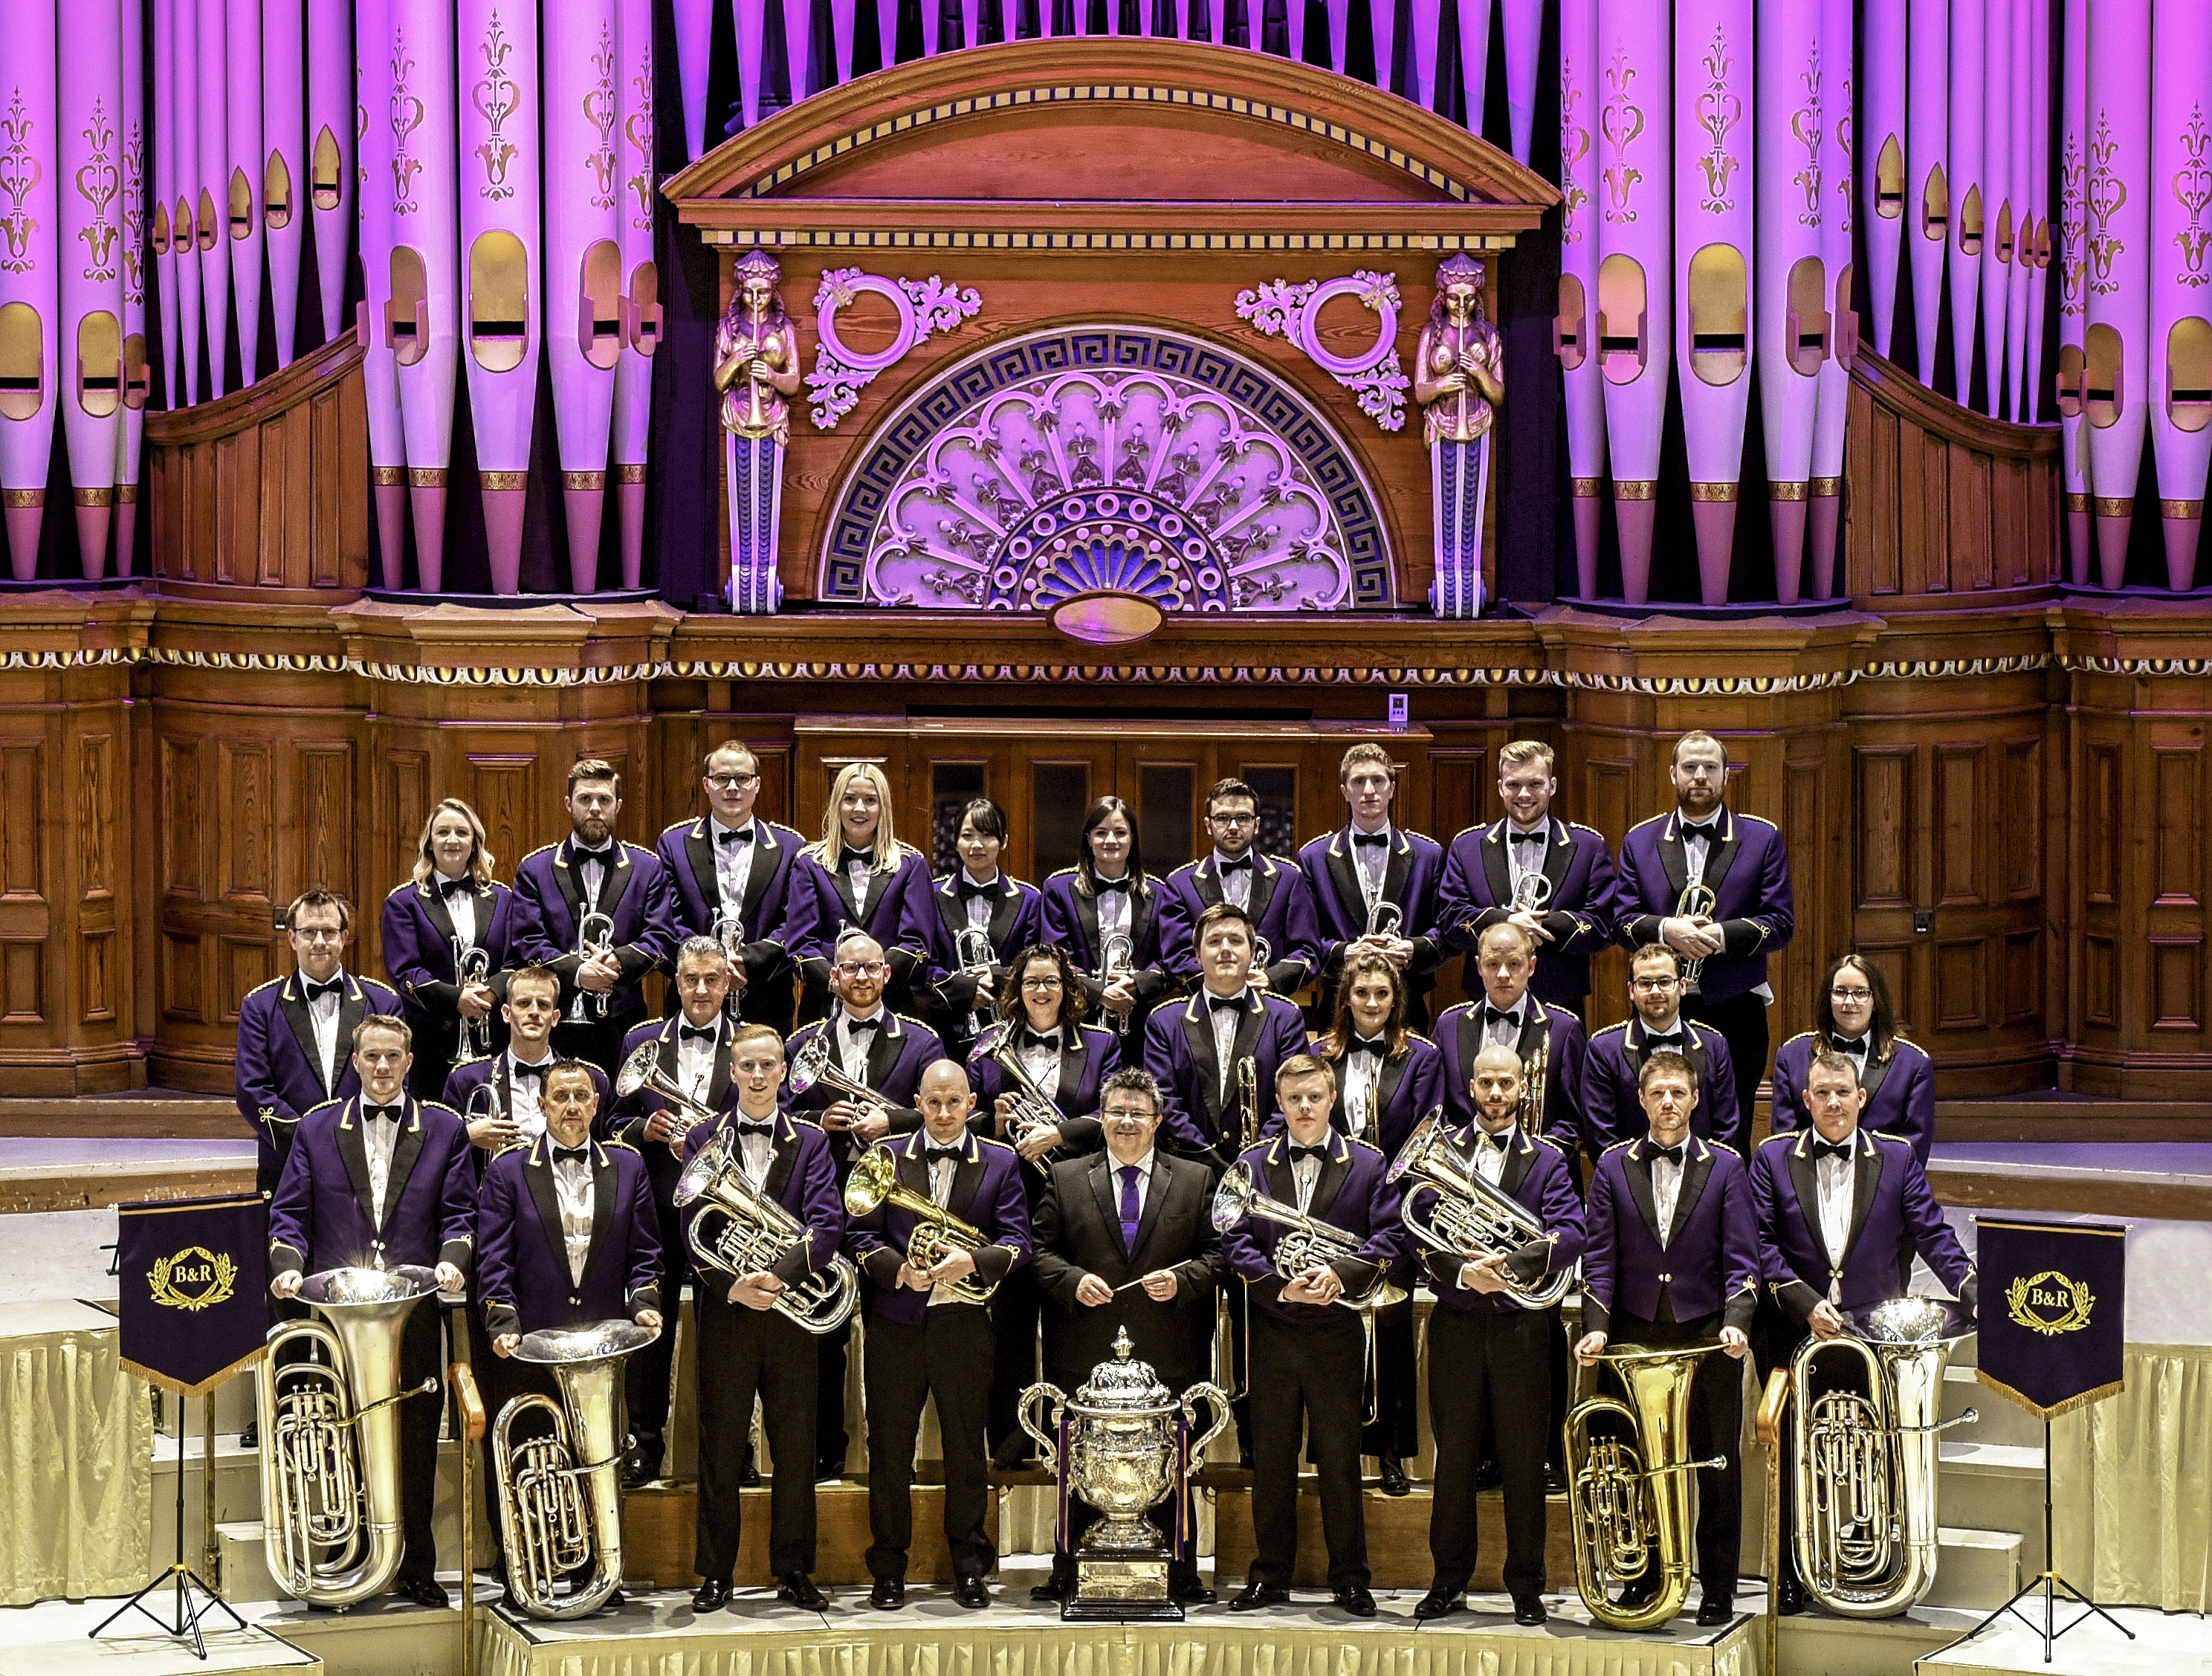 The National Brass Band Champions Brighouse & Rastrick with their Musical Director David Thornton